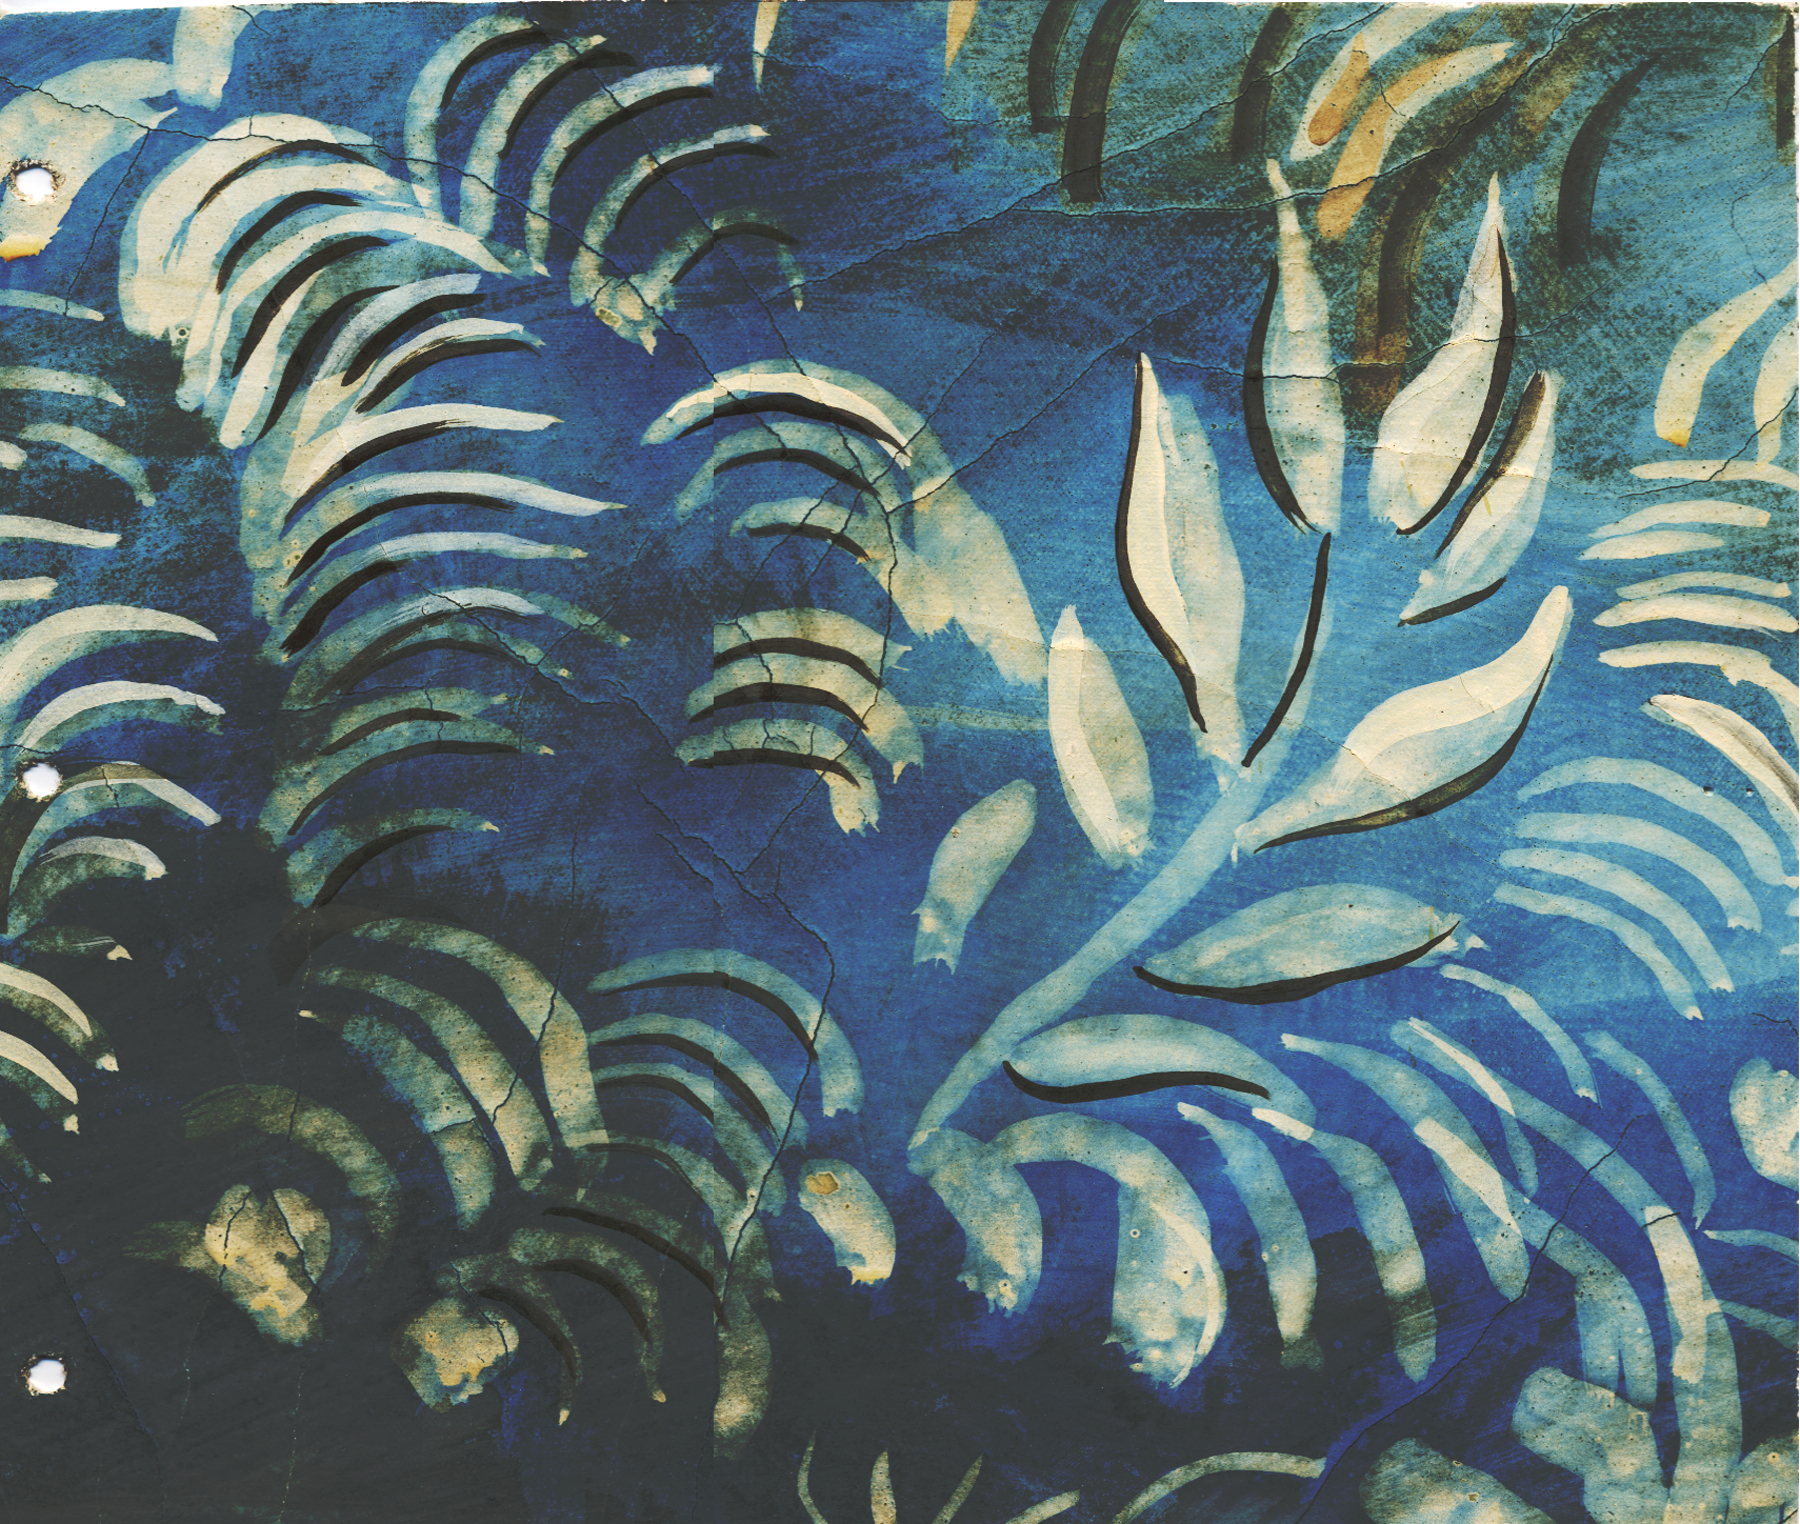 MURAL SAMPLE, INDIGO BACKGROUND